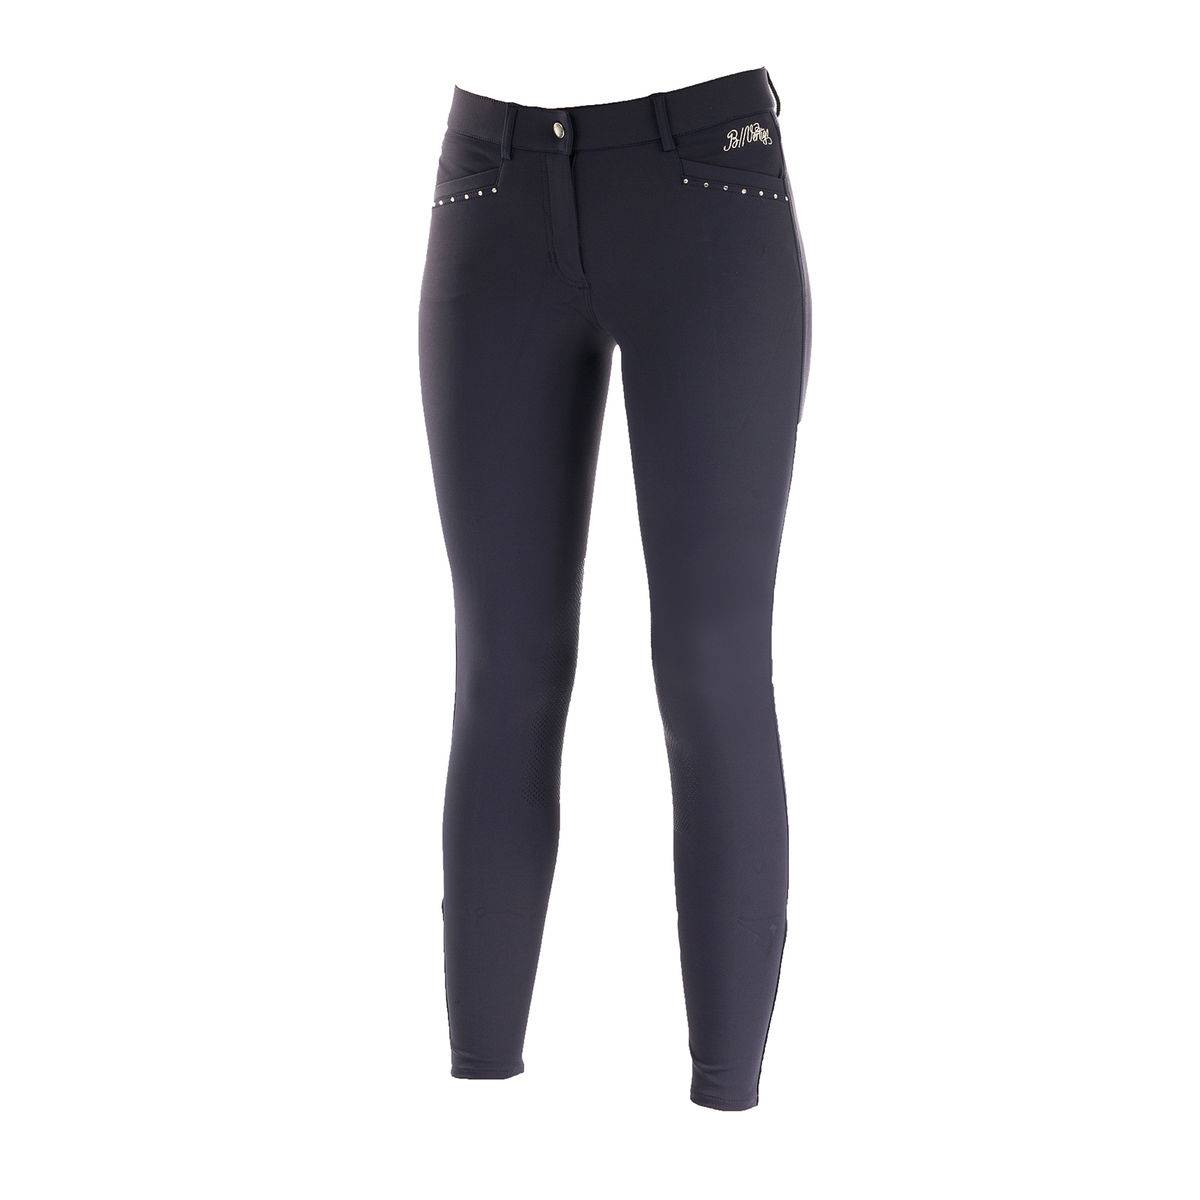 B Vertigo Olivia Silicone Knee Patch Breeches - Ladies